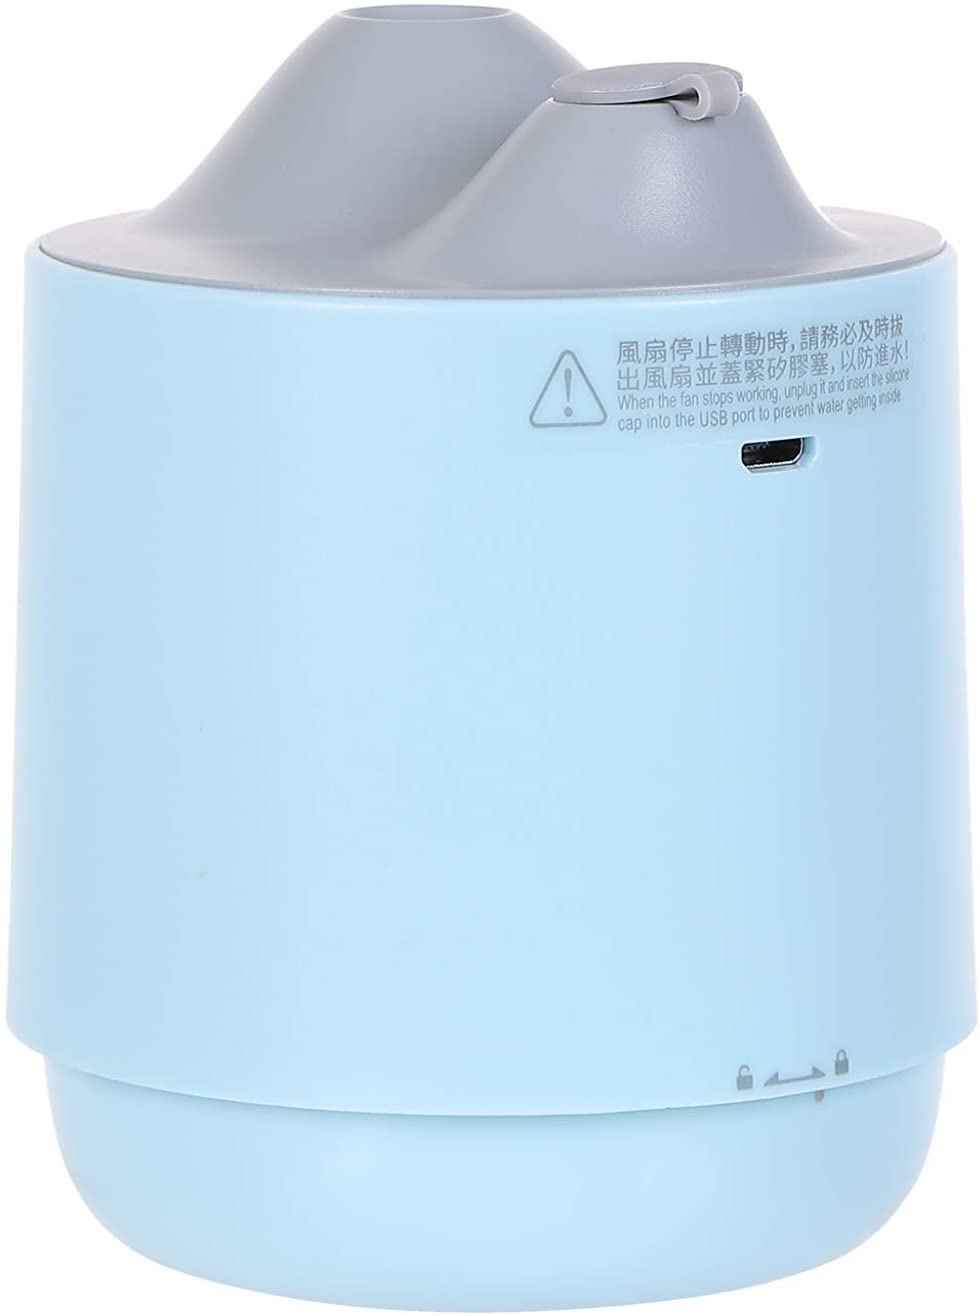 Humidifier 2 in 1 Miniso  for bedroom with built in fan - ultrasonic, cool, mist small humidifier - ideal for baby room humidifier